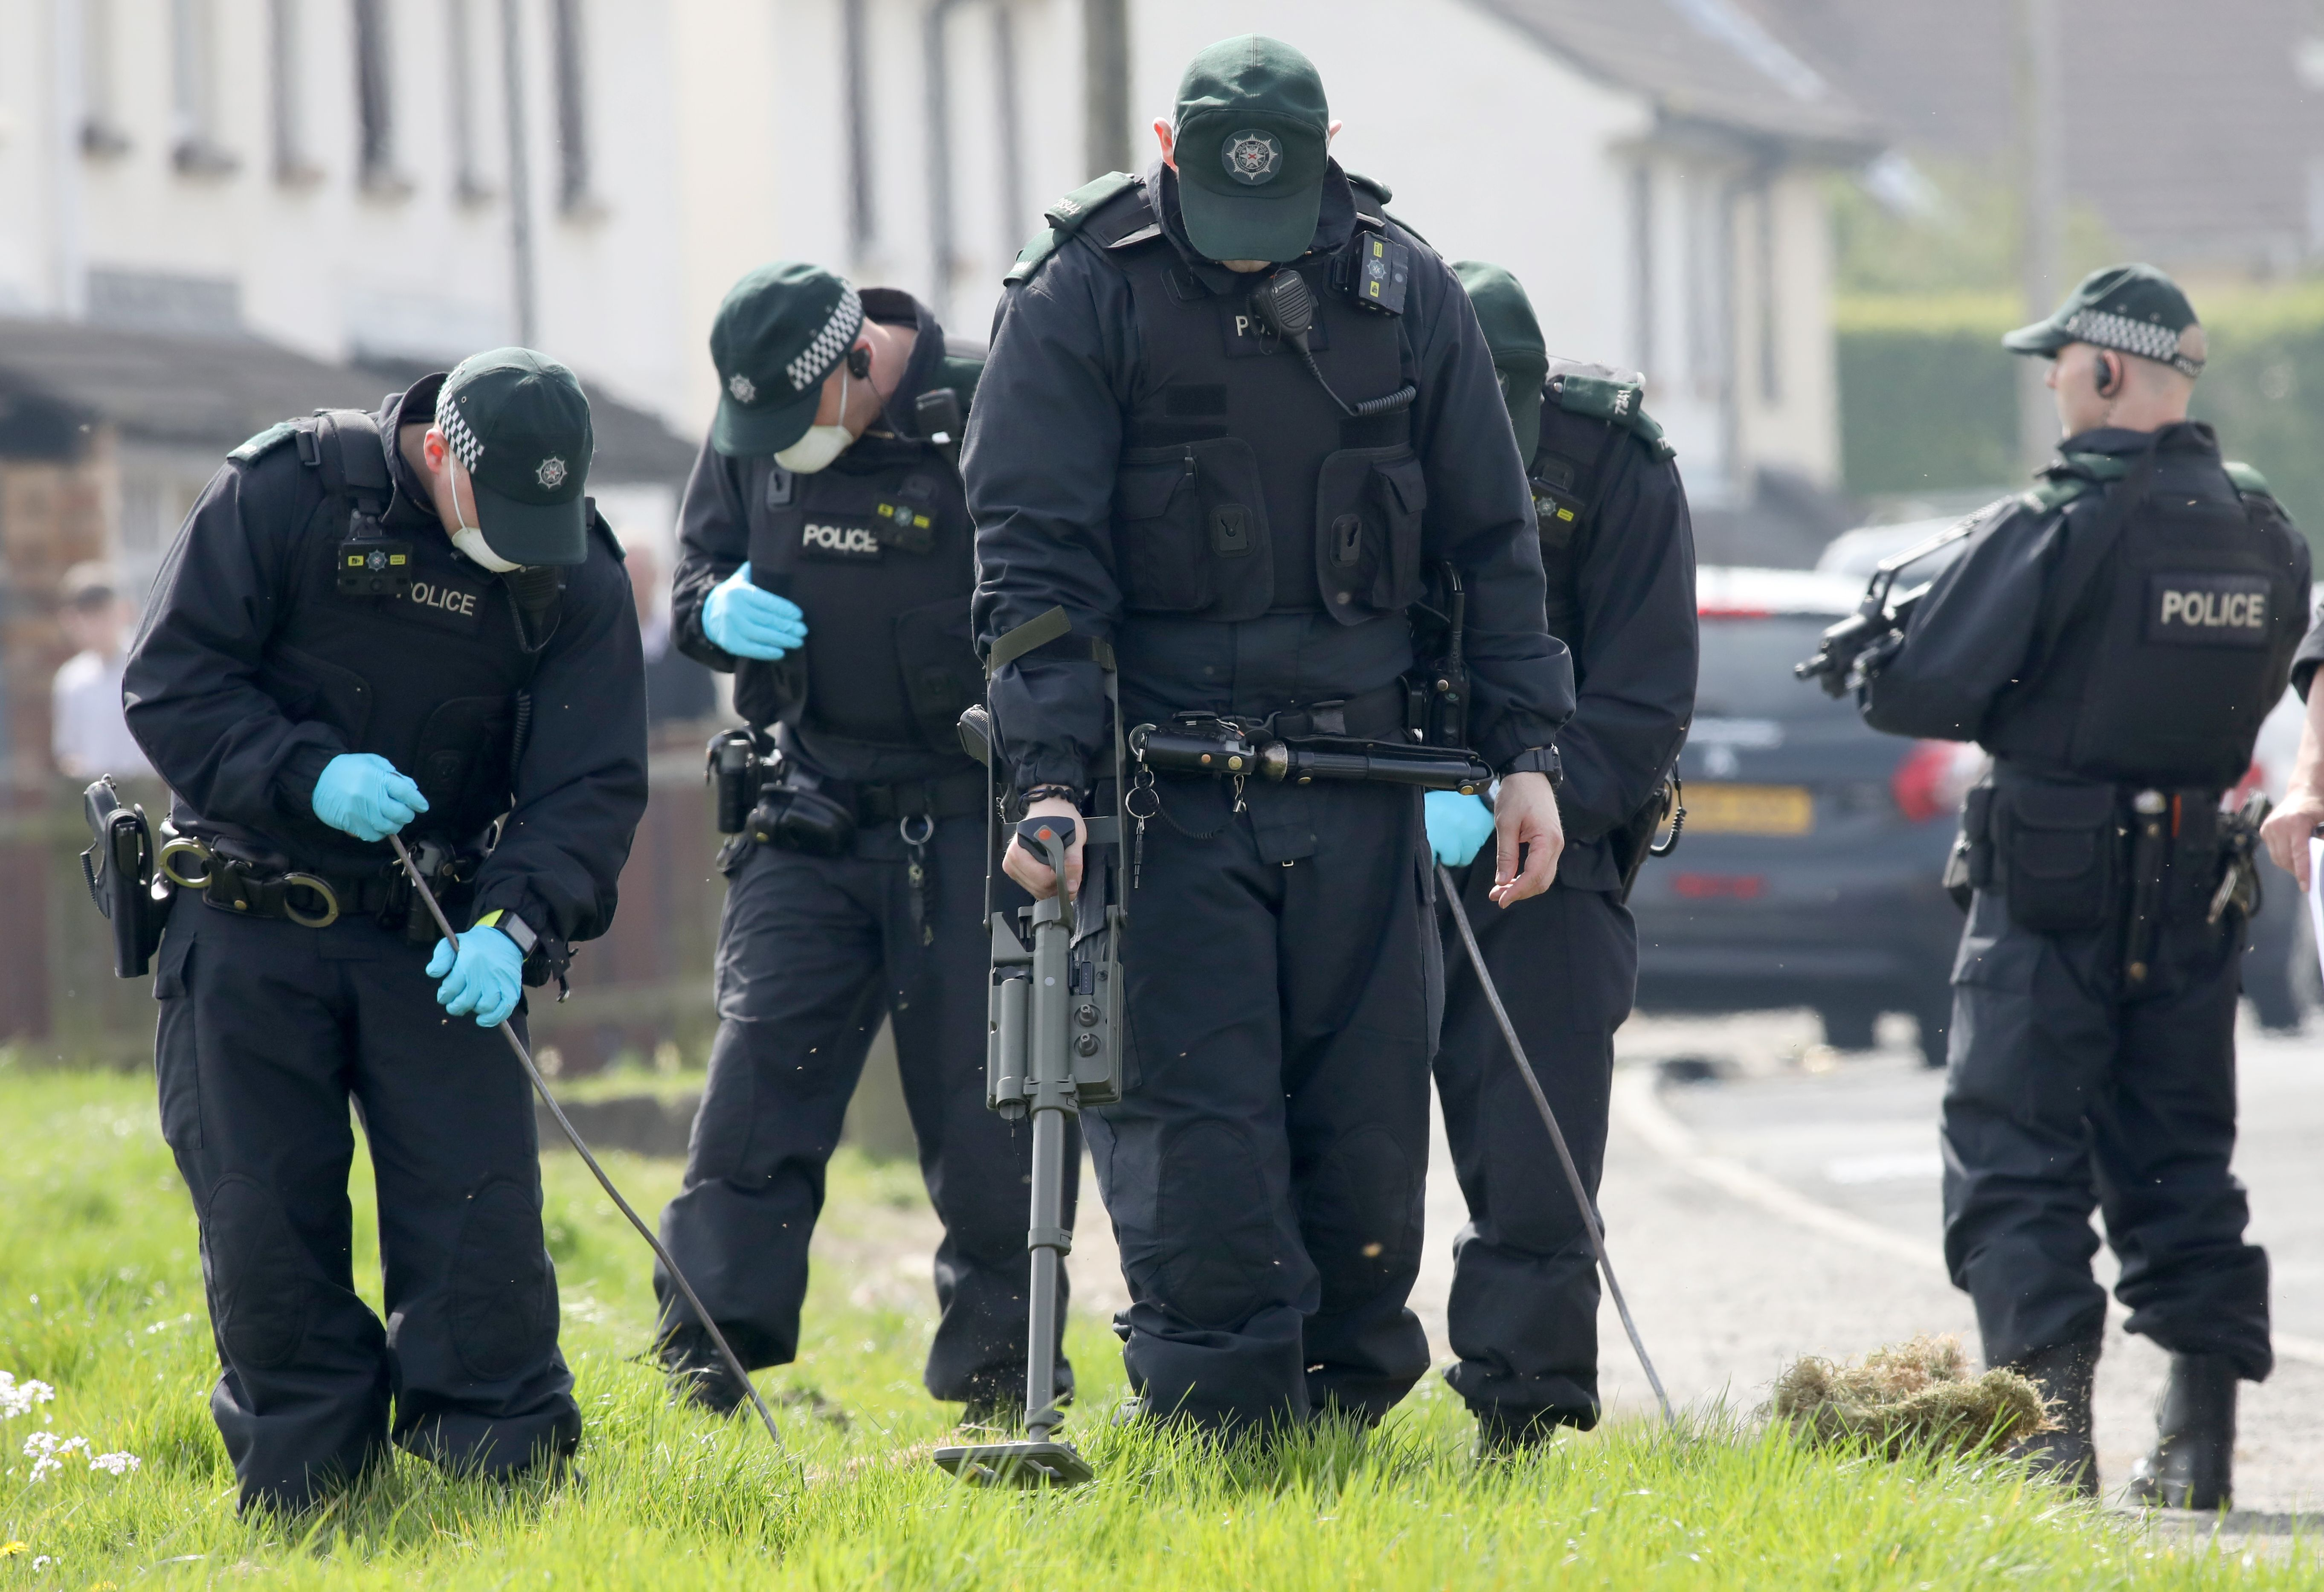 Police officers search waste ground near the scene in the Creggan area of Derry (Londonderry) in Northern Ireland on April 20, 2019 where journalist Lyra McKee was fatally shot amid rioting on April 18.(PAUL FAITH/AFP/Getty Images)